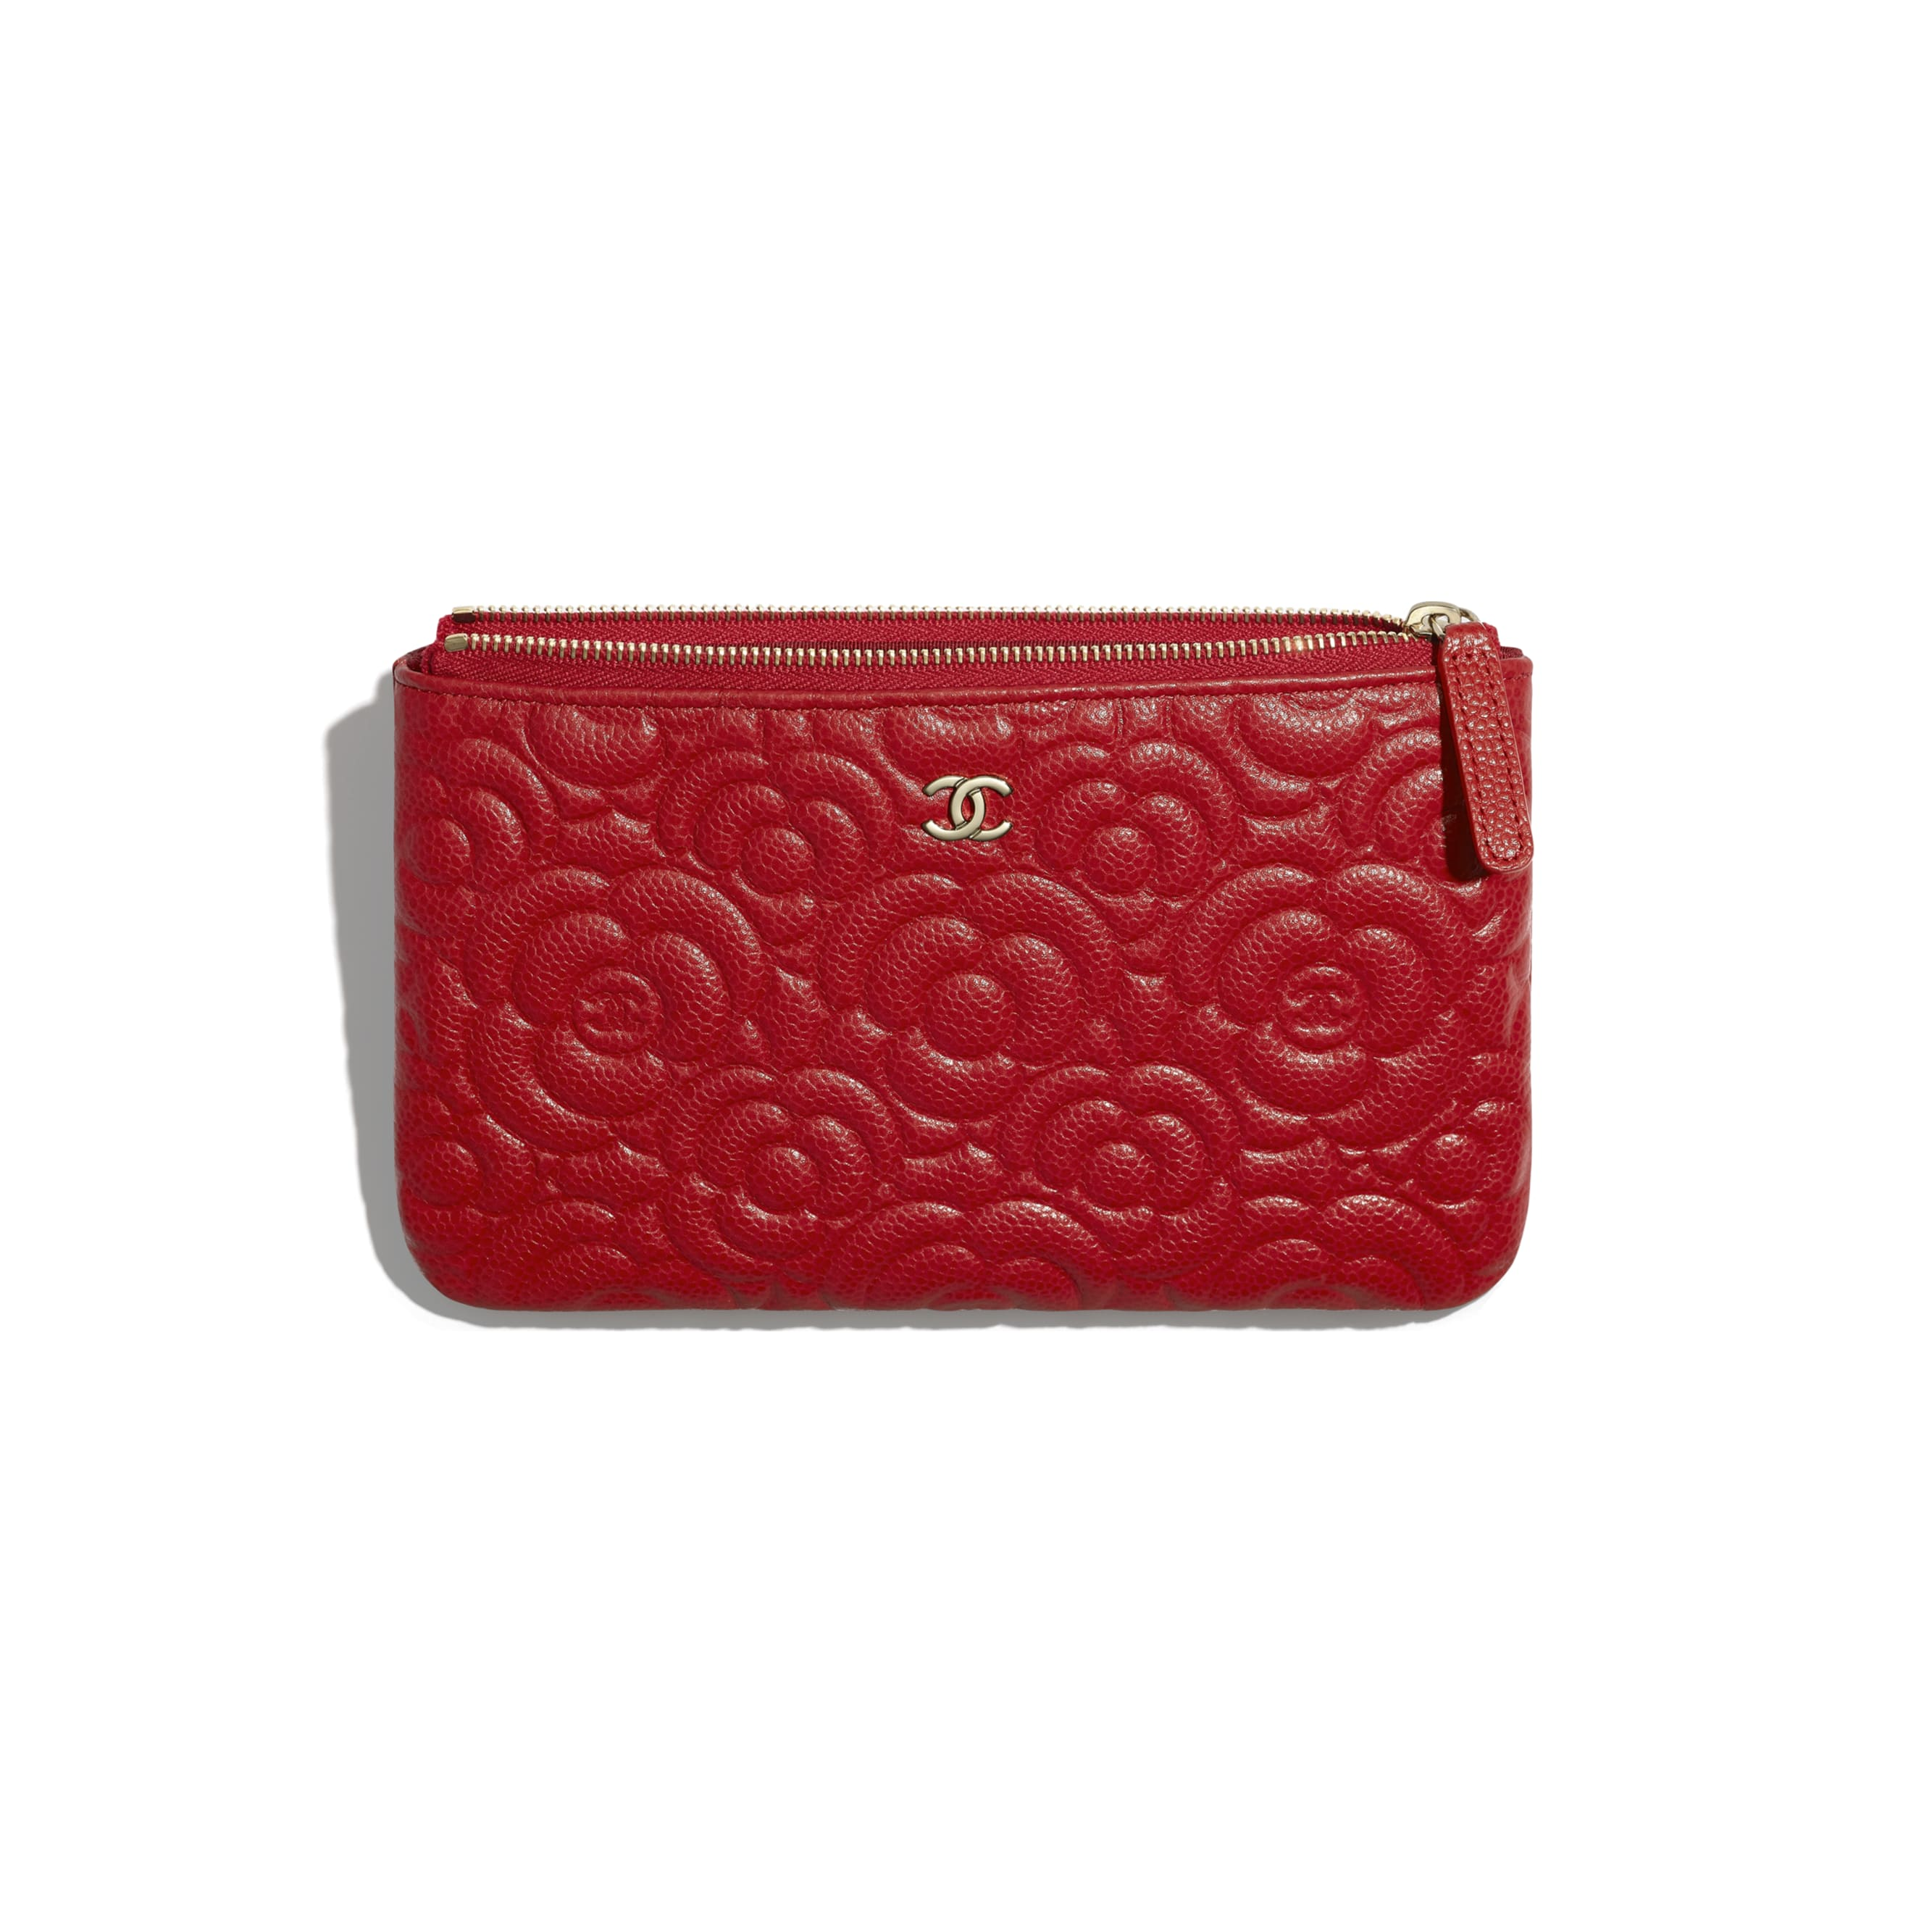 Small Pouch - Red - Grained Shiny Calfskin & Gold-Tone Metal - CHANEL - Other view - see standard sized version